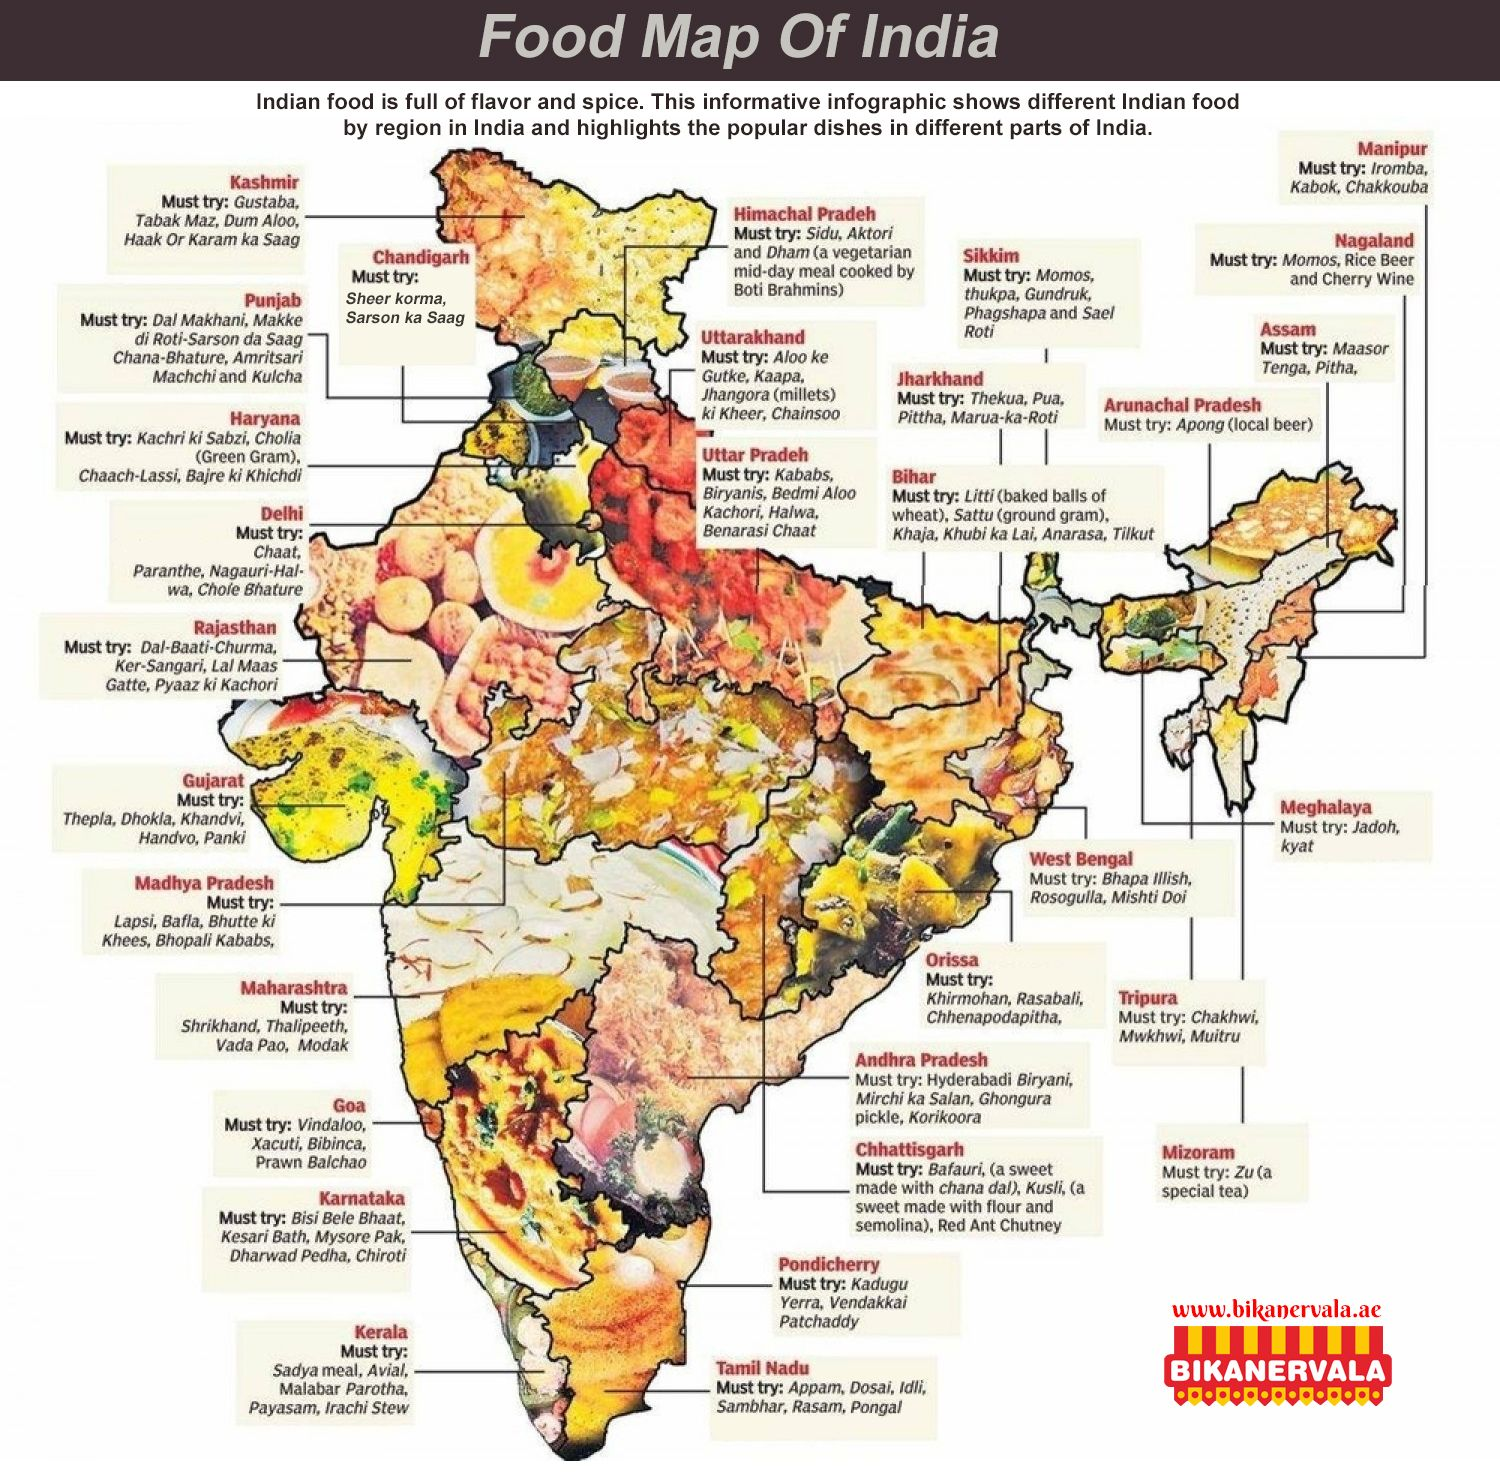 Food Map Of India Bikanervala Indian Food Is Full Of Flavor And